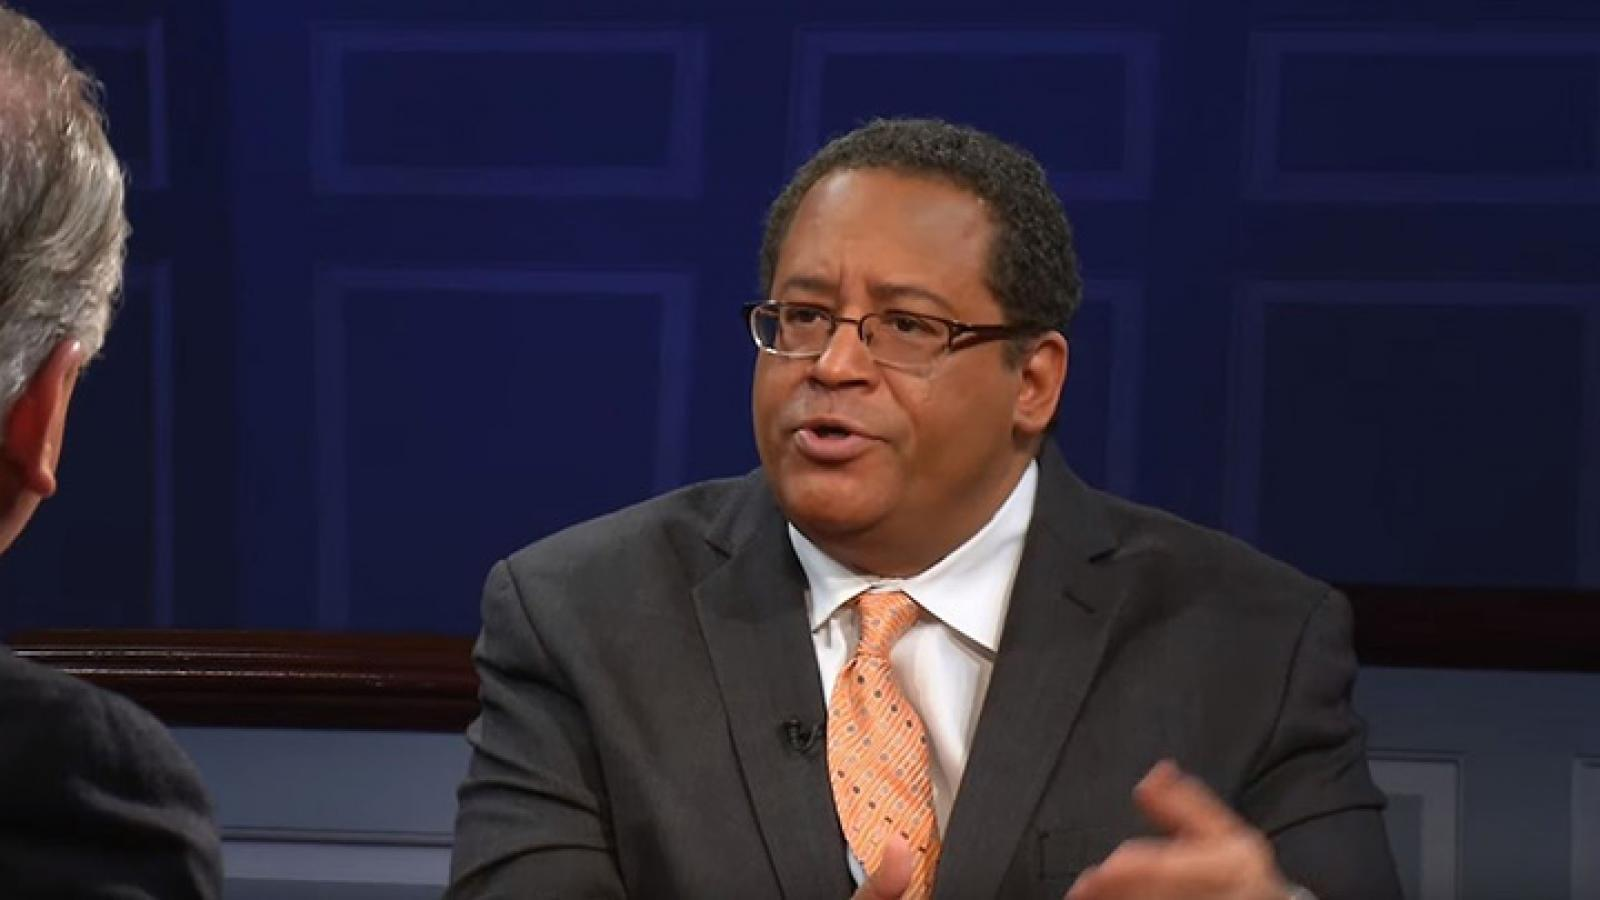 Michael Eric Dyson discusses how to increase prosecutions of police violence